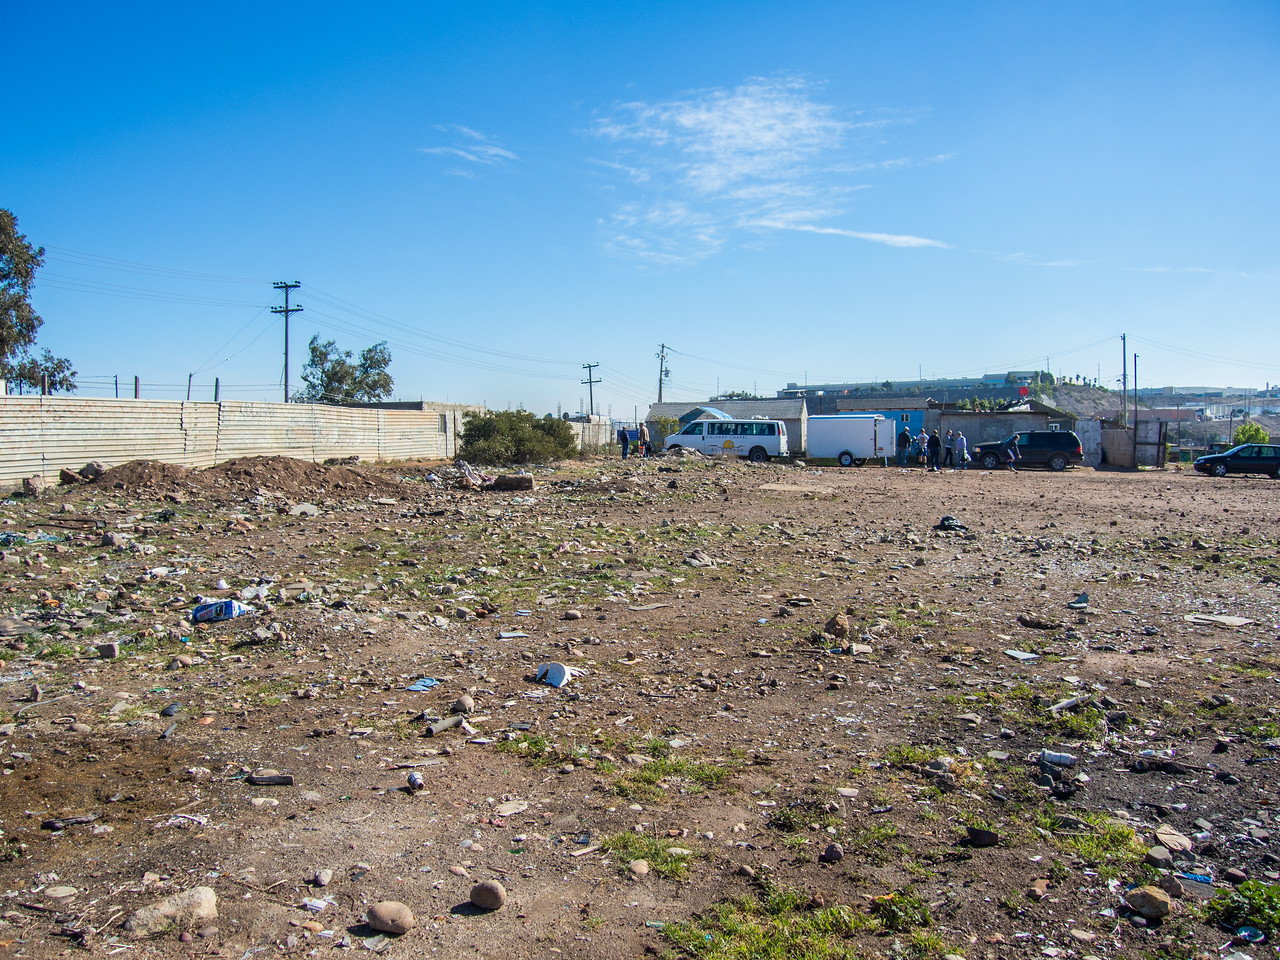 I would love to rent a skid steer to clean up this vacant lot for the local kids to play soccer on.